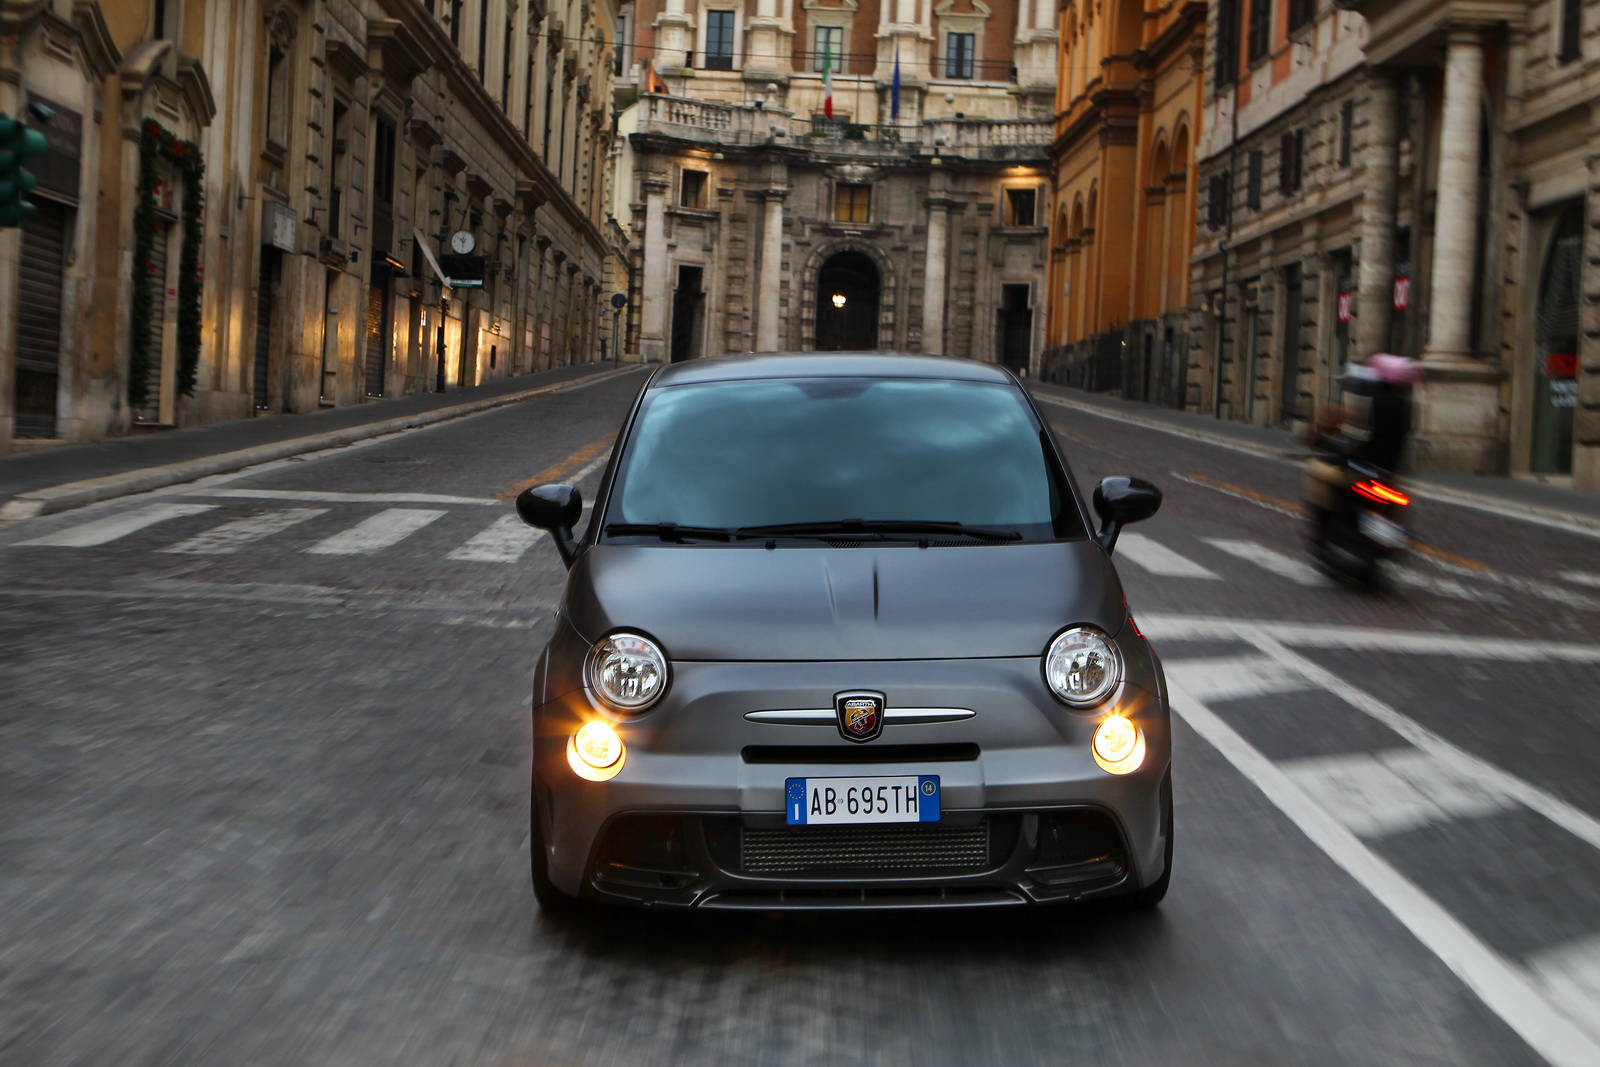 Fiat Abarth 695 Biposto Is The Fastest Abarth To Date